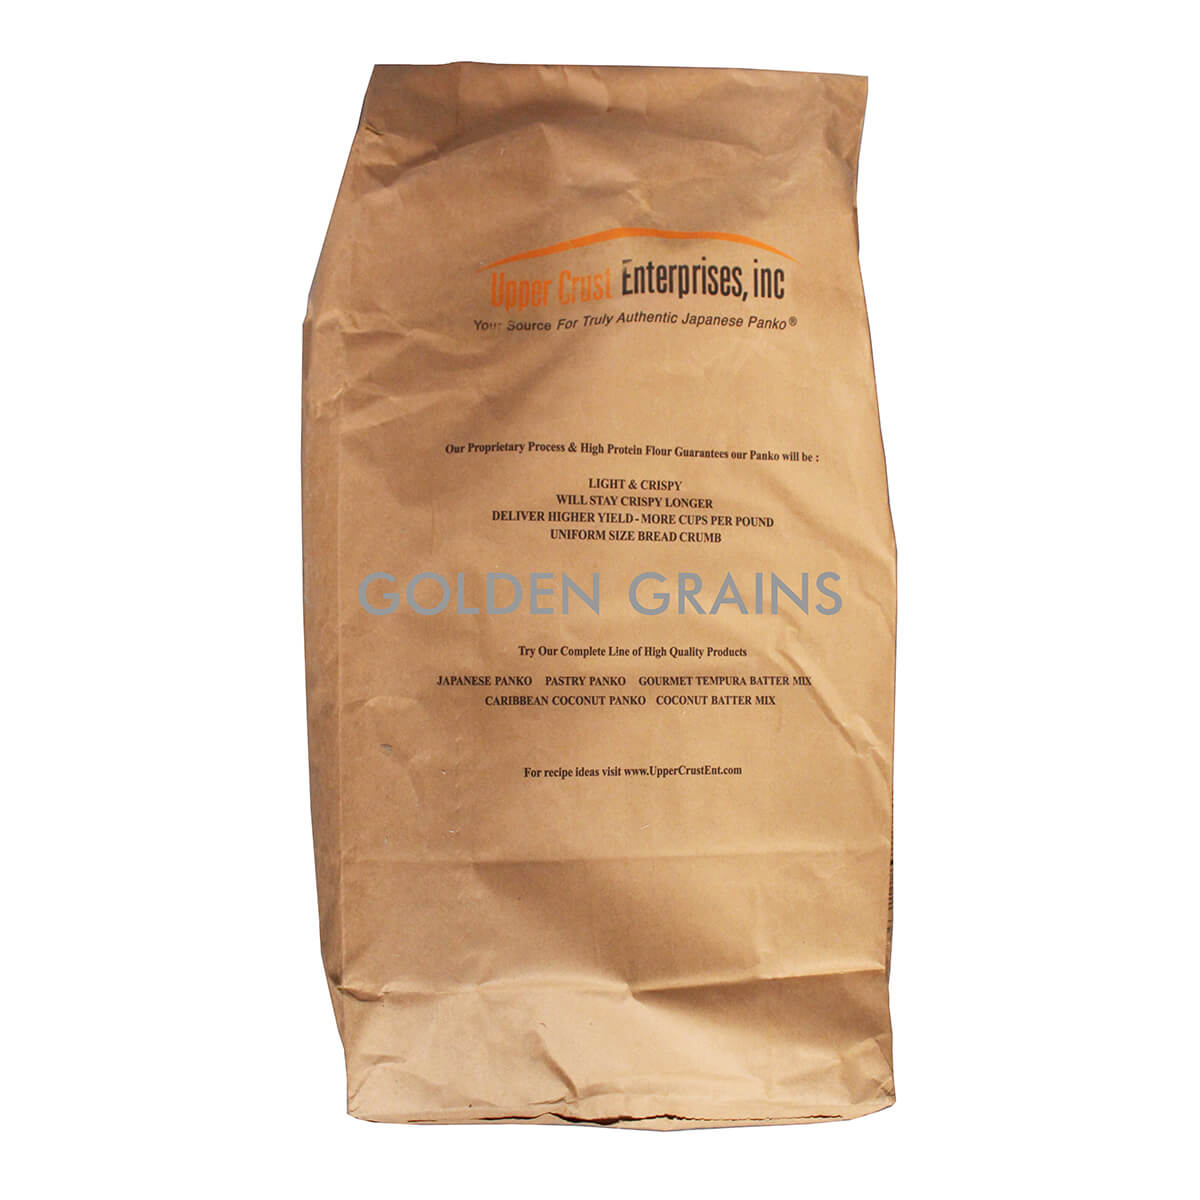 Golden Grains Icrest - Japan Bread Crumbs - 907KG - USA - Back.jpg